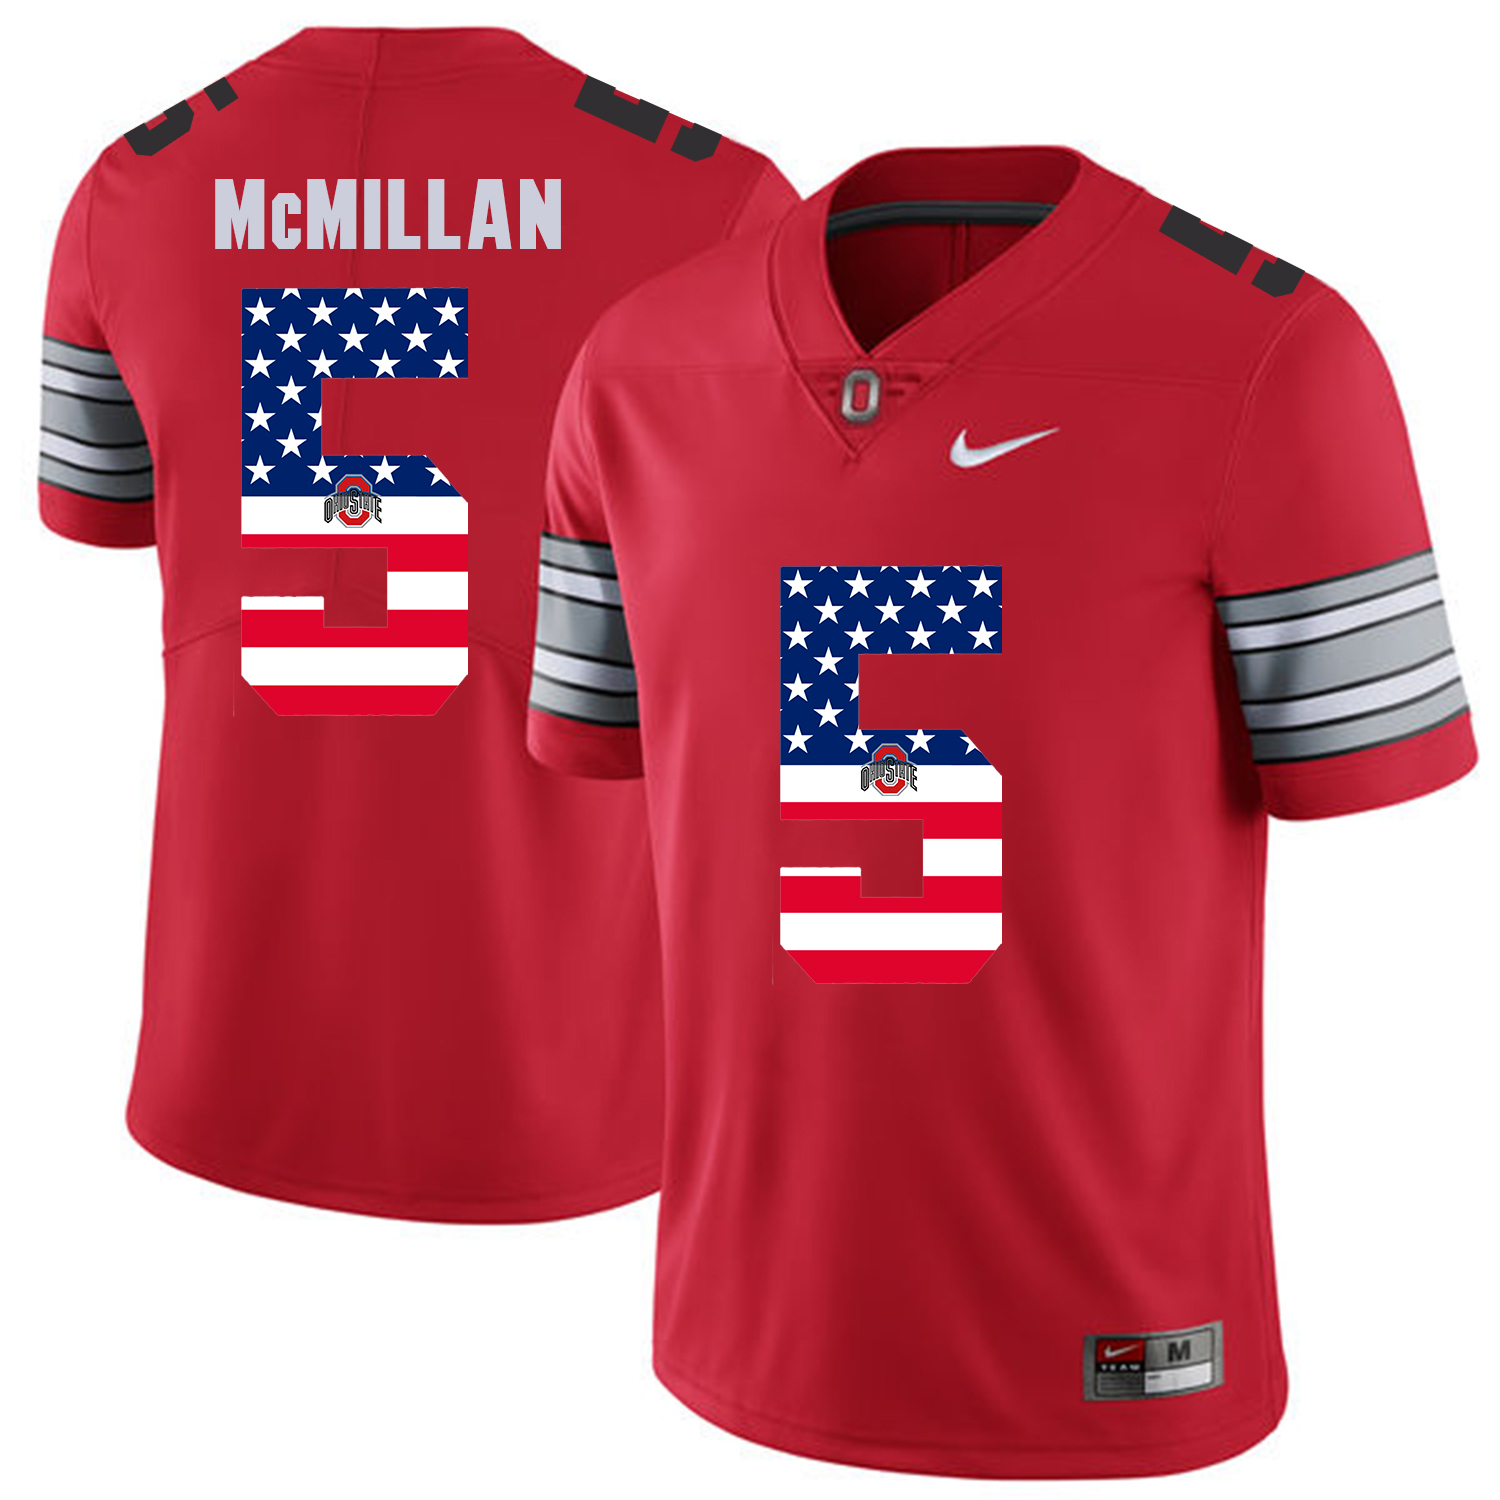 Men Ohio State 5 Mcmillan Red Flag Customized NCAA Jerseys